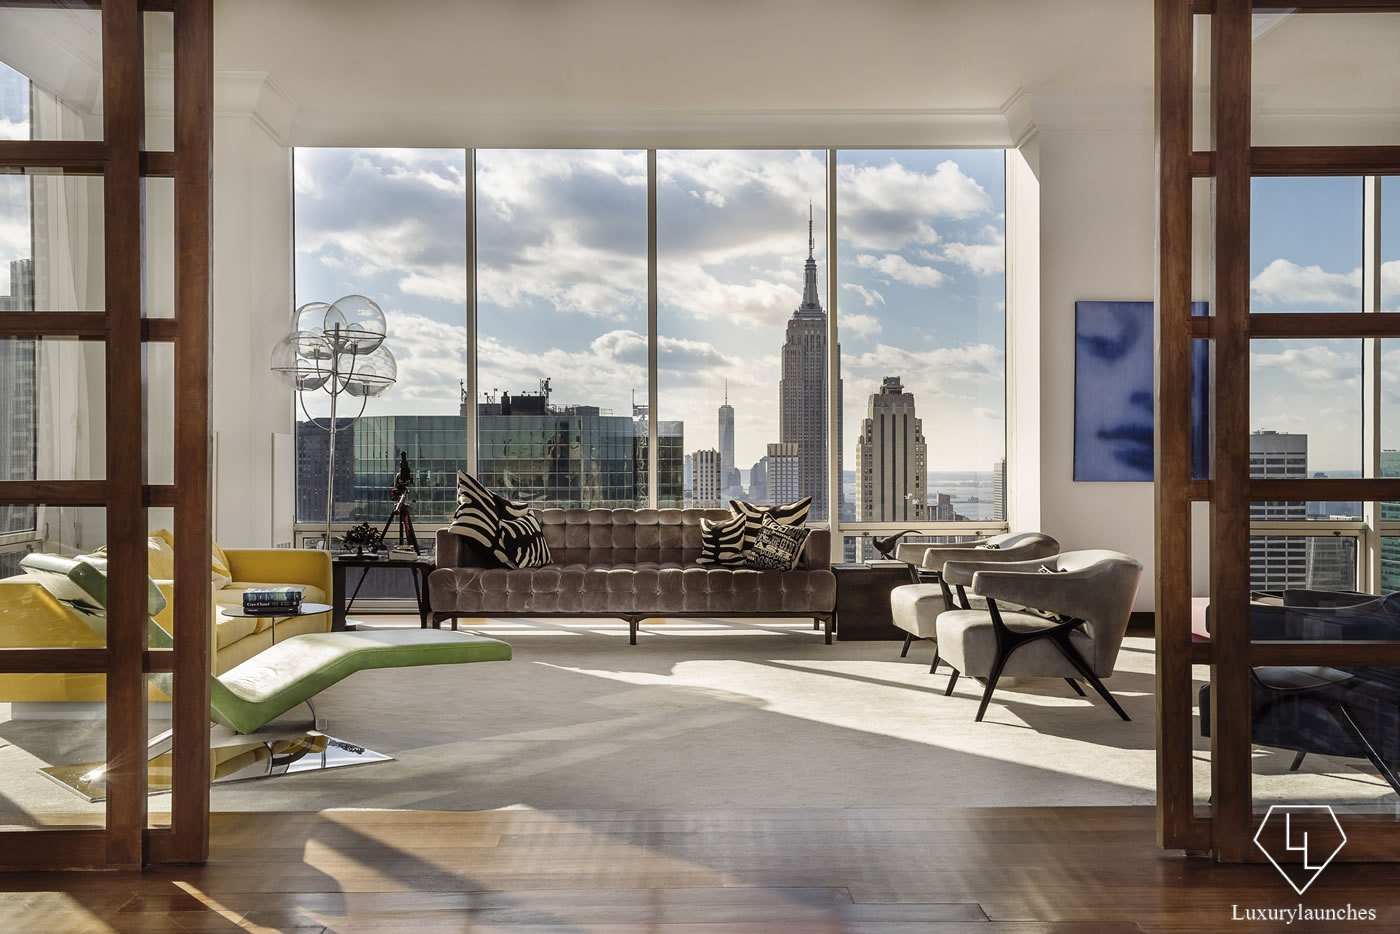 Gucci 39 s 38 million penthouse in manhattan is up for sale for Penthouses for sale in manhattan